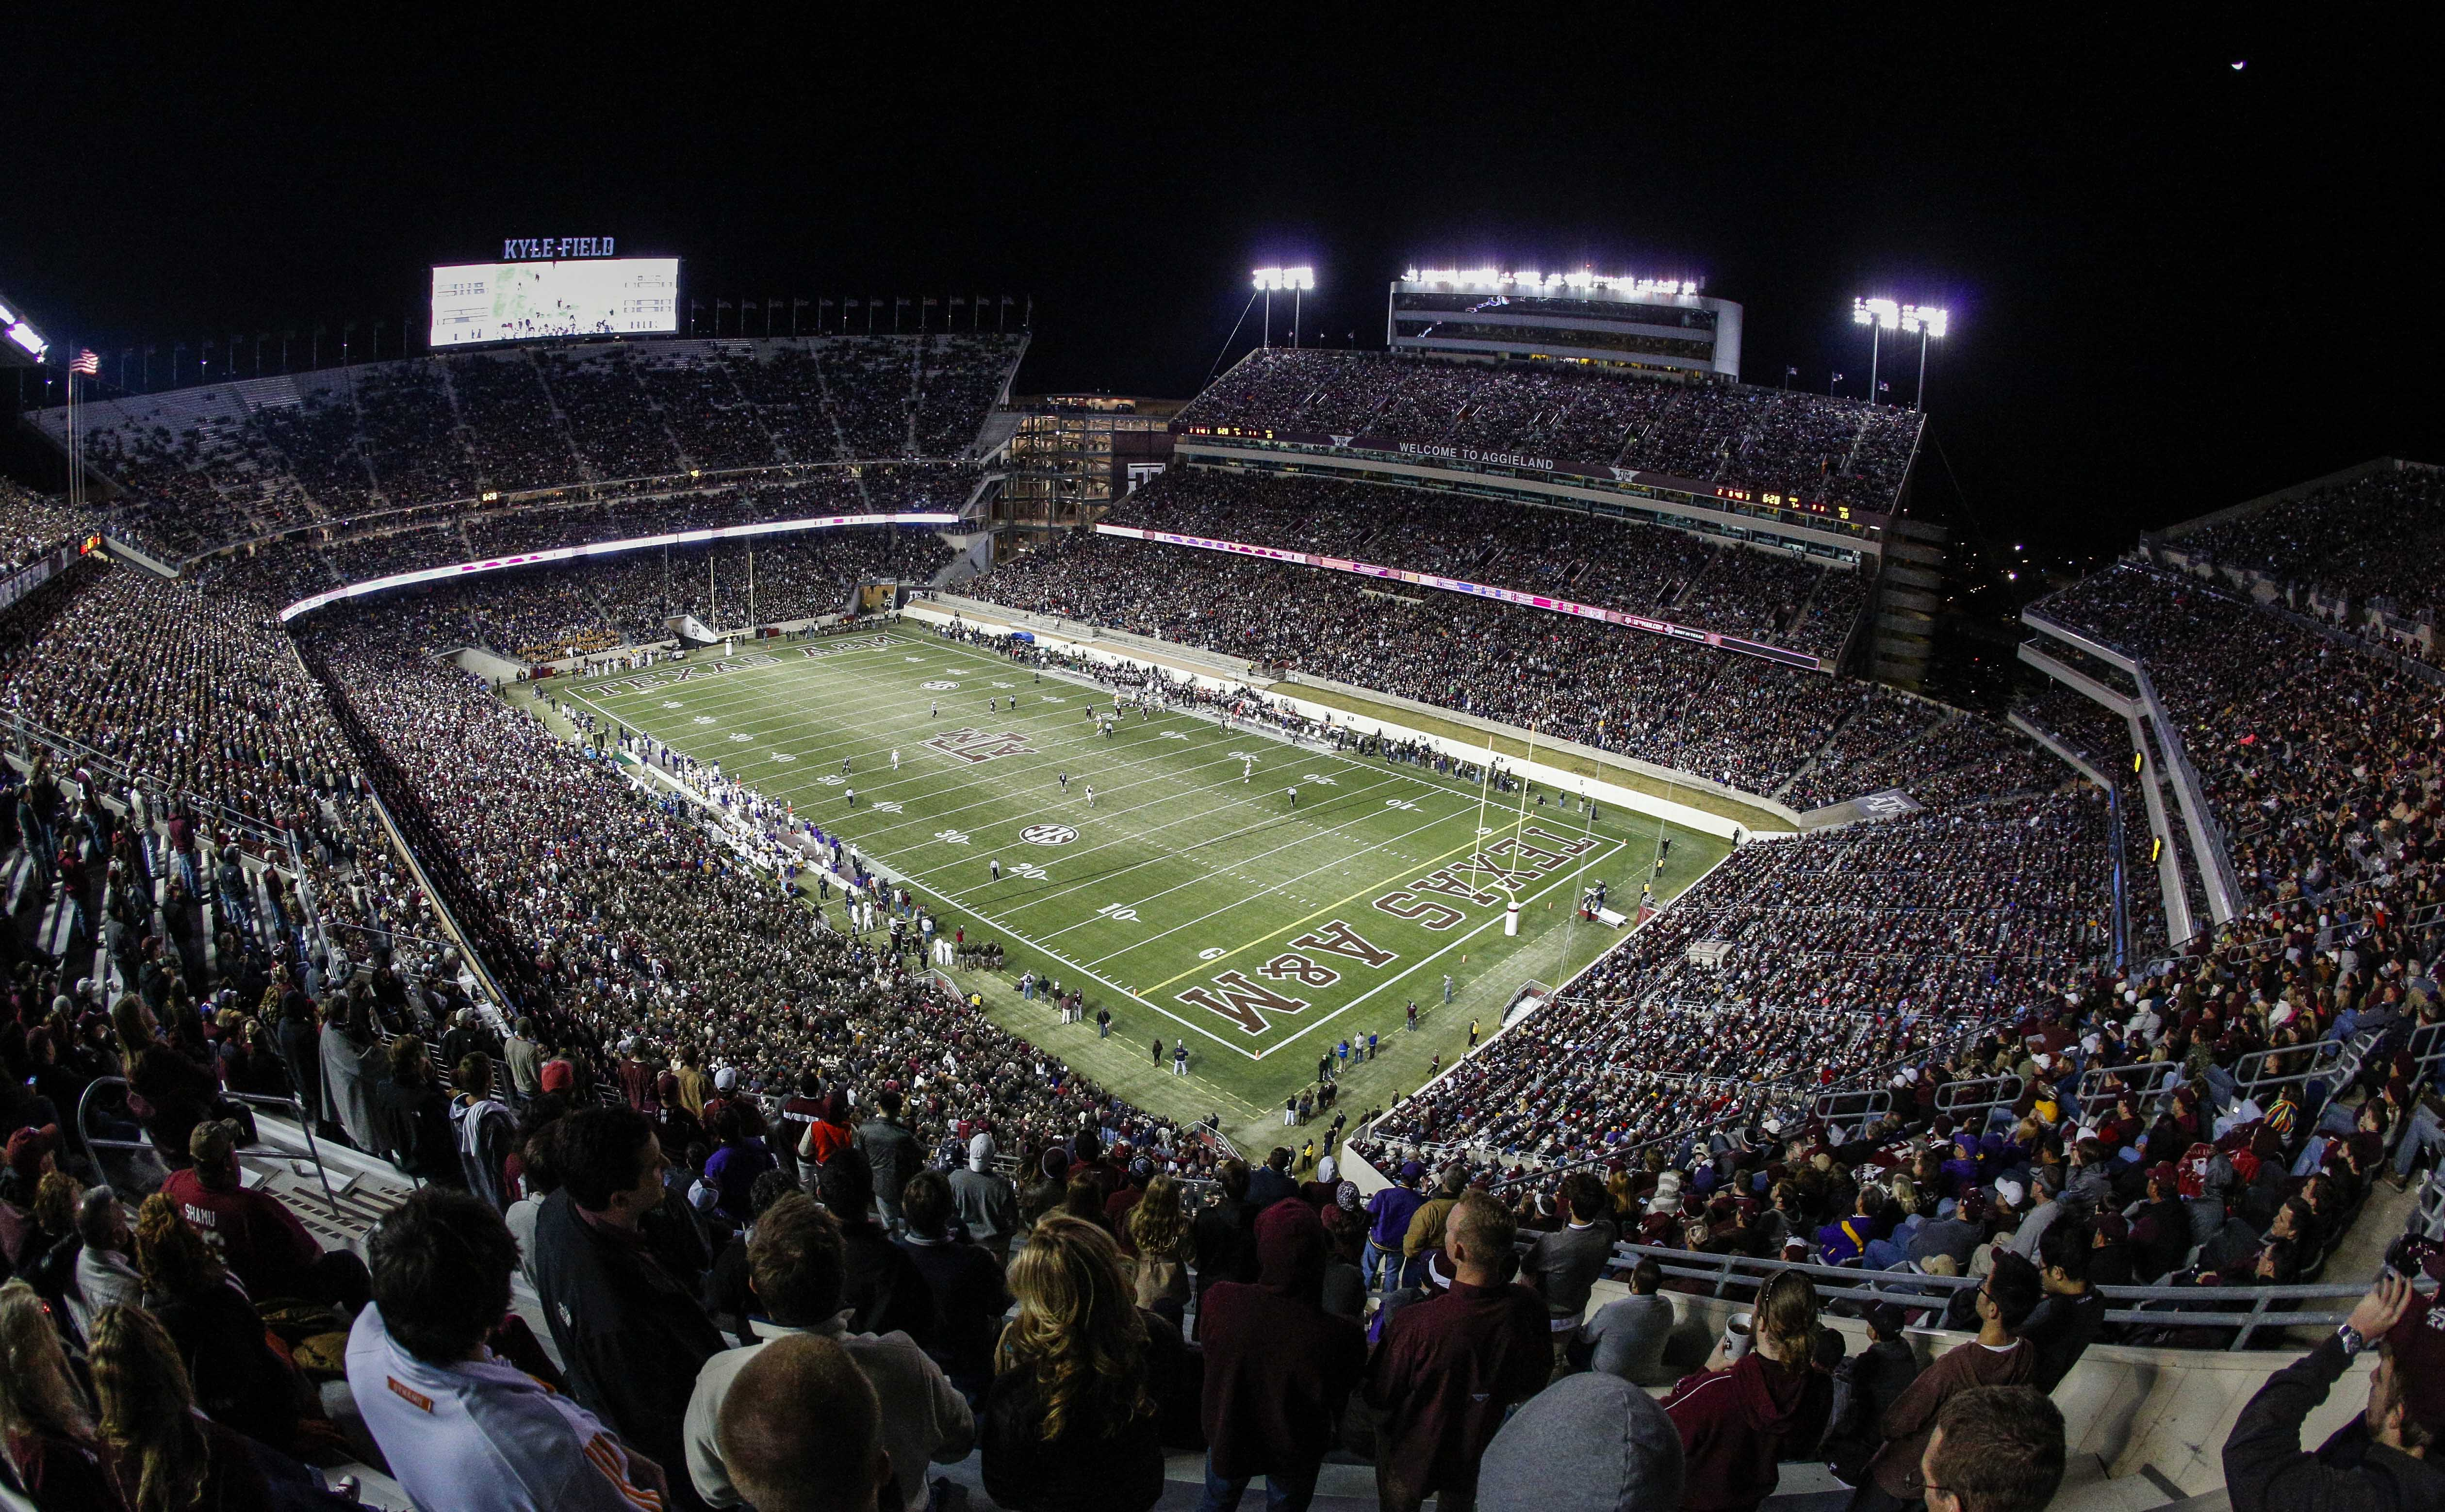 West side of Texas A&M's Kyle Field will implode on Sunday